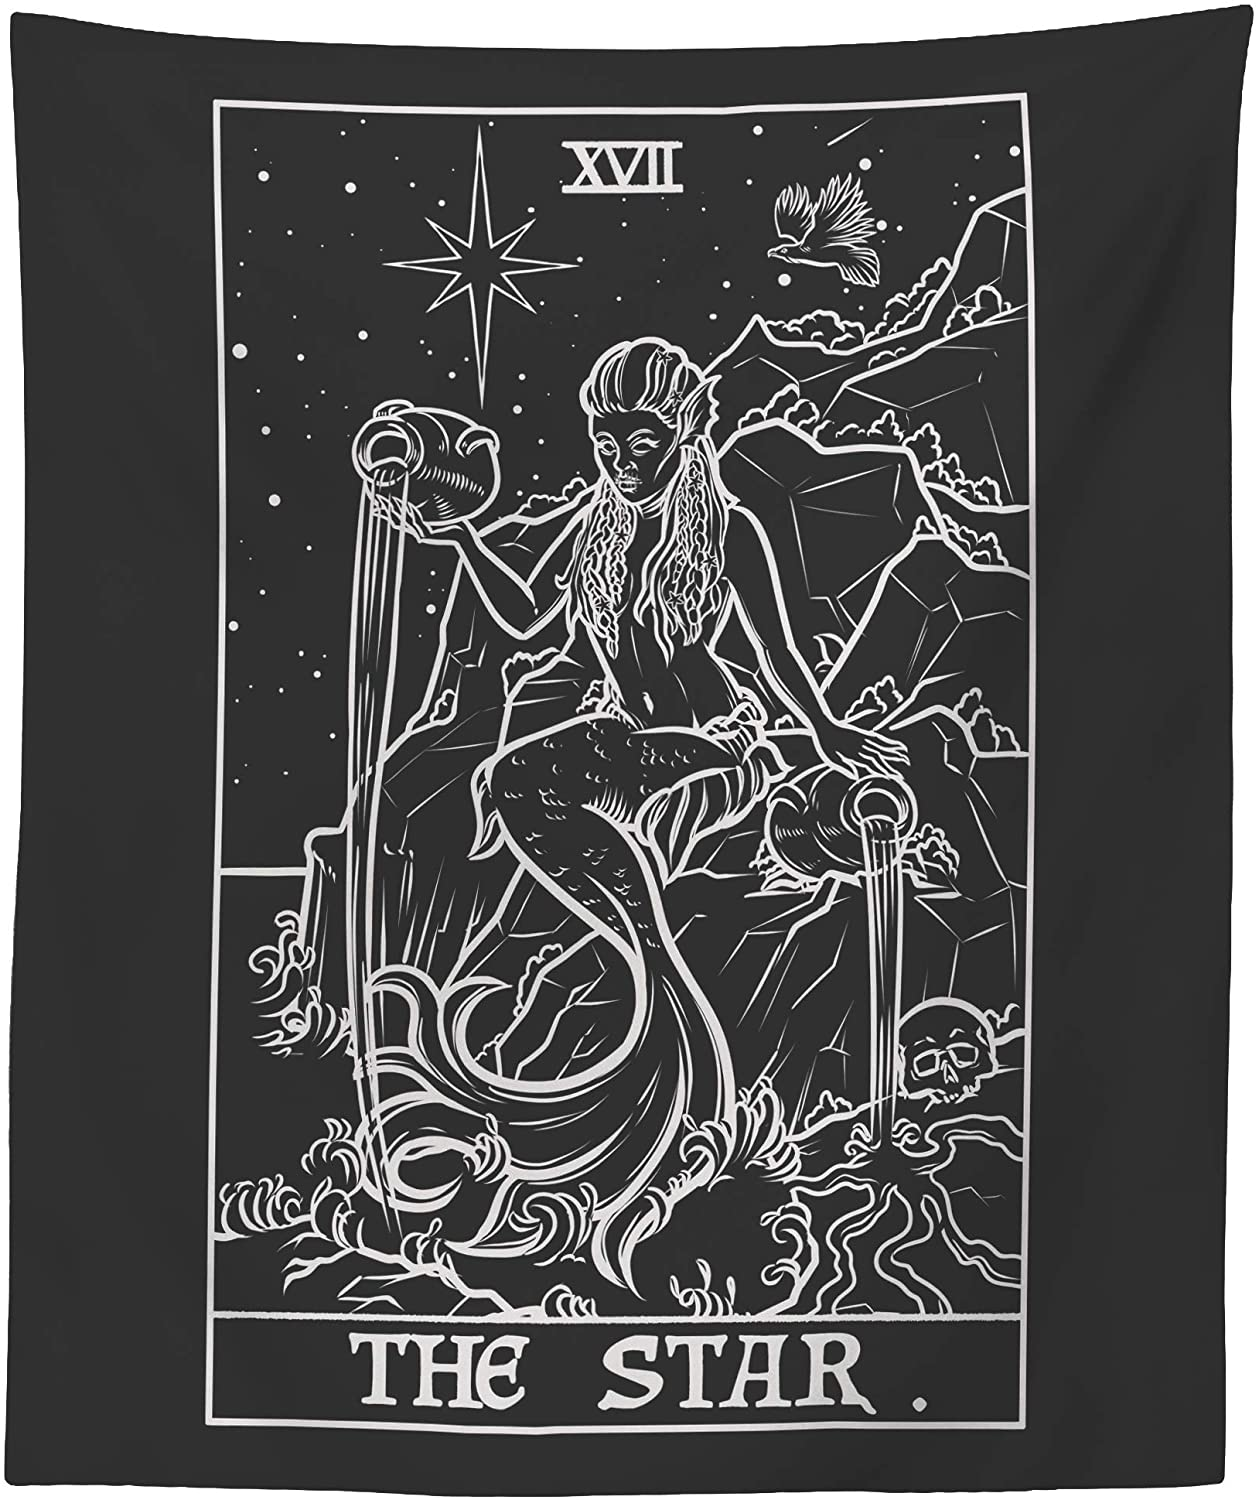 "The Star Tarot Card Tapestry (Black & White) - Spooky Siren Mermaid - Gothic Halloween Home Decor Wall Hanging (59"" x 51"")"